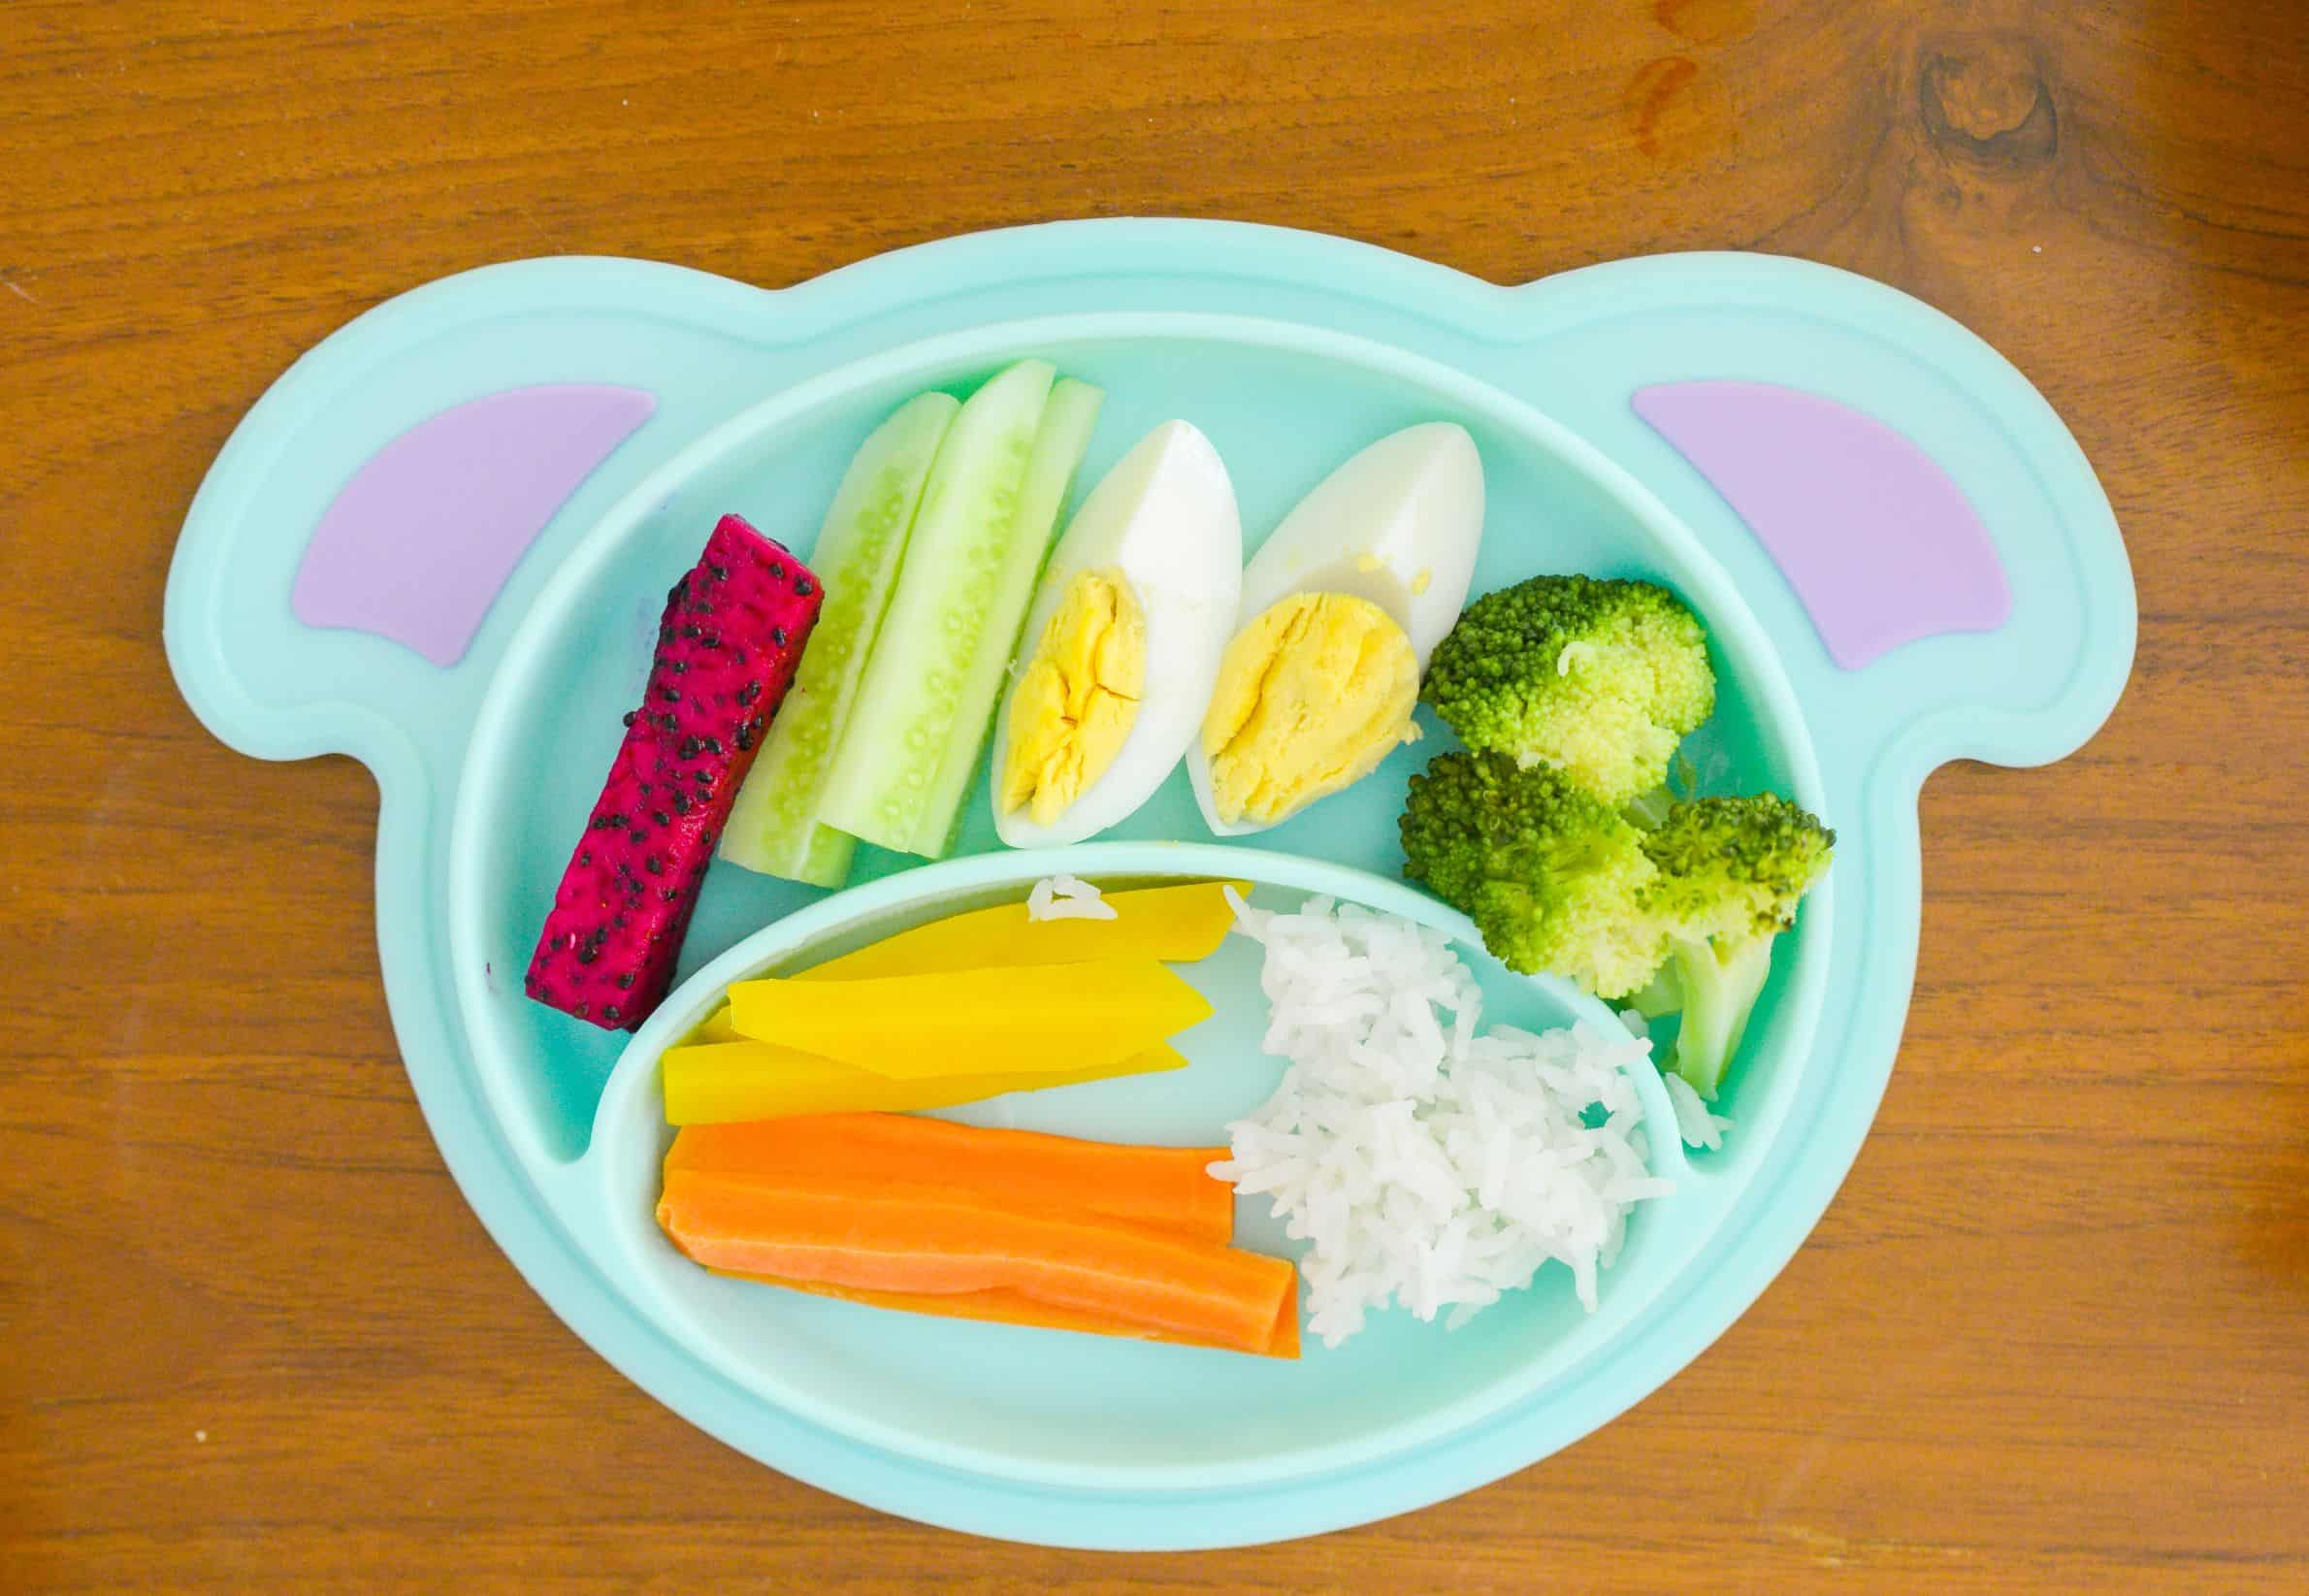 49 Easy Baby Led Weaning Recipes your Baby will LOVE